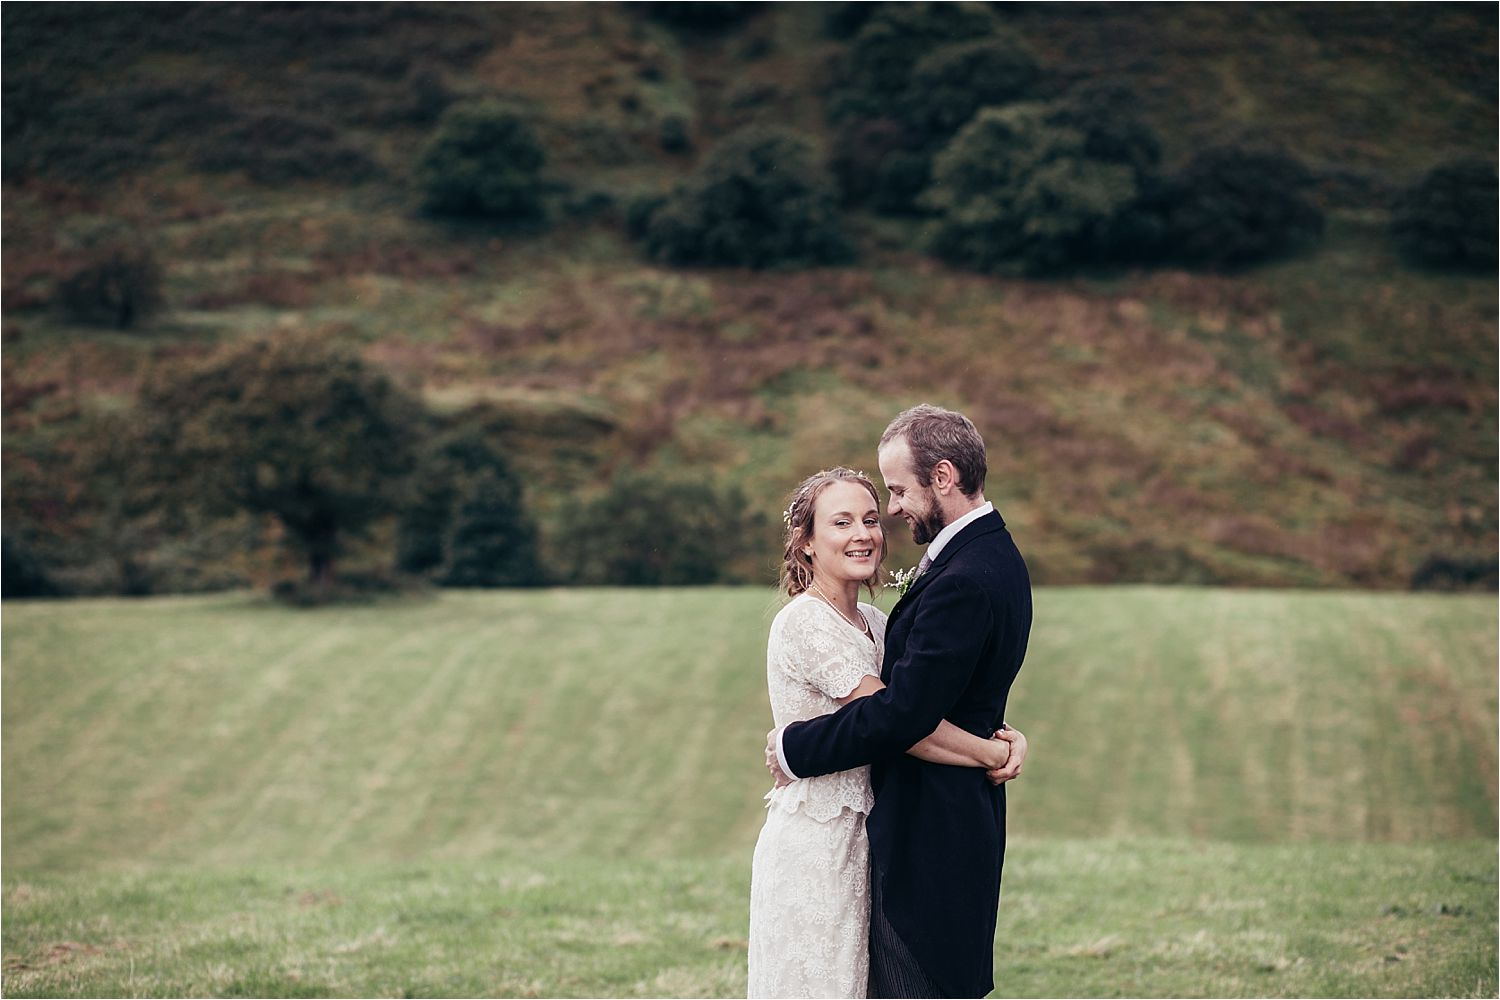 Bride and groom embrace in rural setting for Manchester wedding